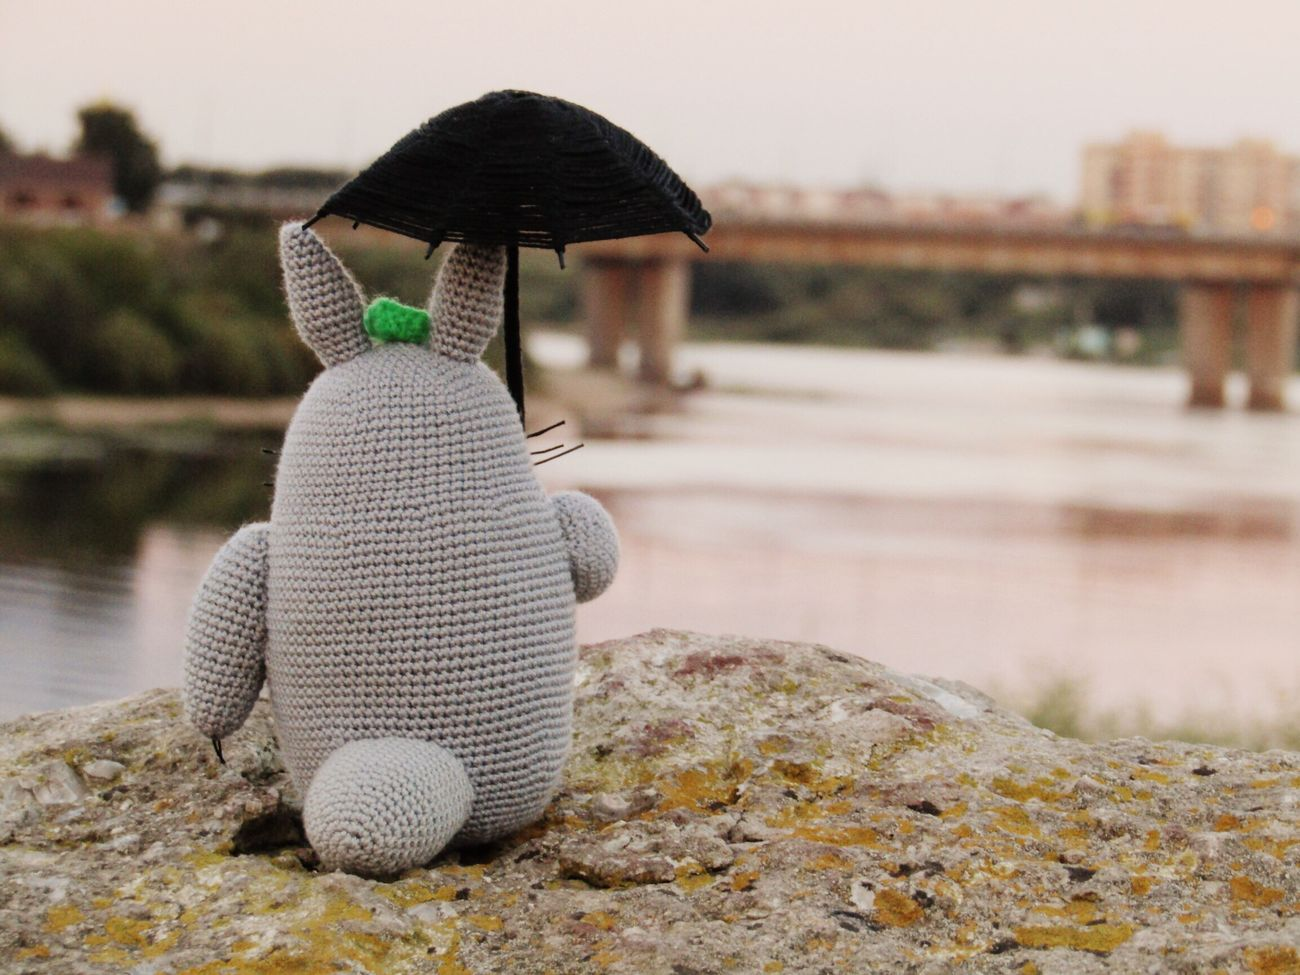 My friend Totoro loves travelling so much.... Water Outdoors Totoro Nature No People Focus On Foreground Day Magic Moments Beach Pskov EyeEmNewHere